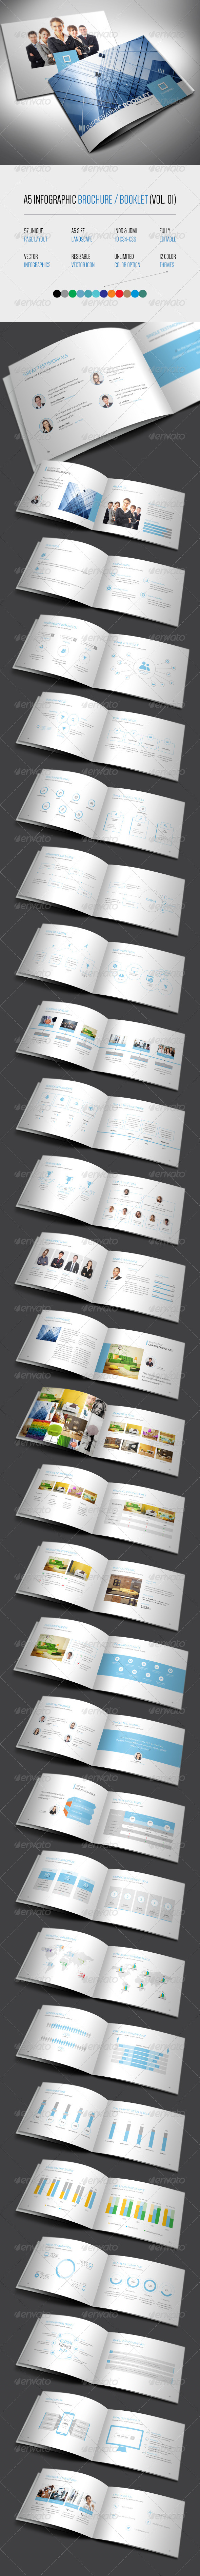 Infographic Brochure / Booklet (Vol. 01) - Corporate Brochures